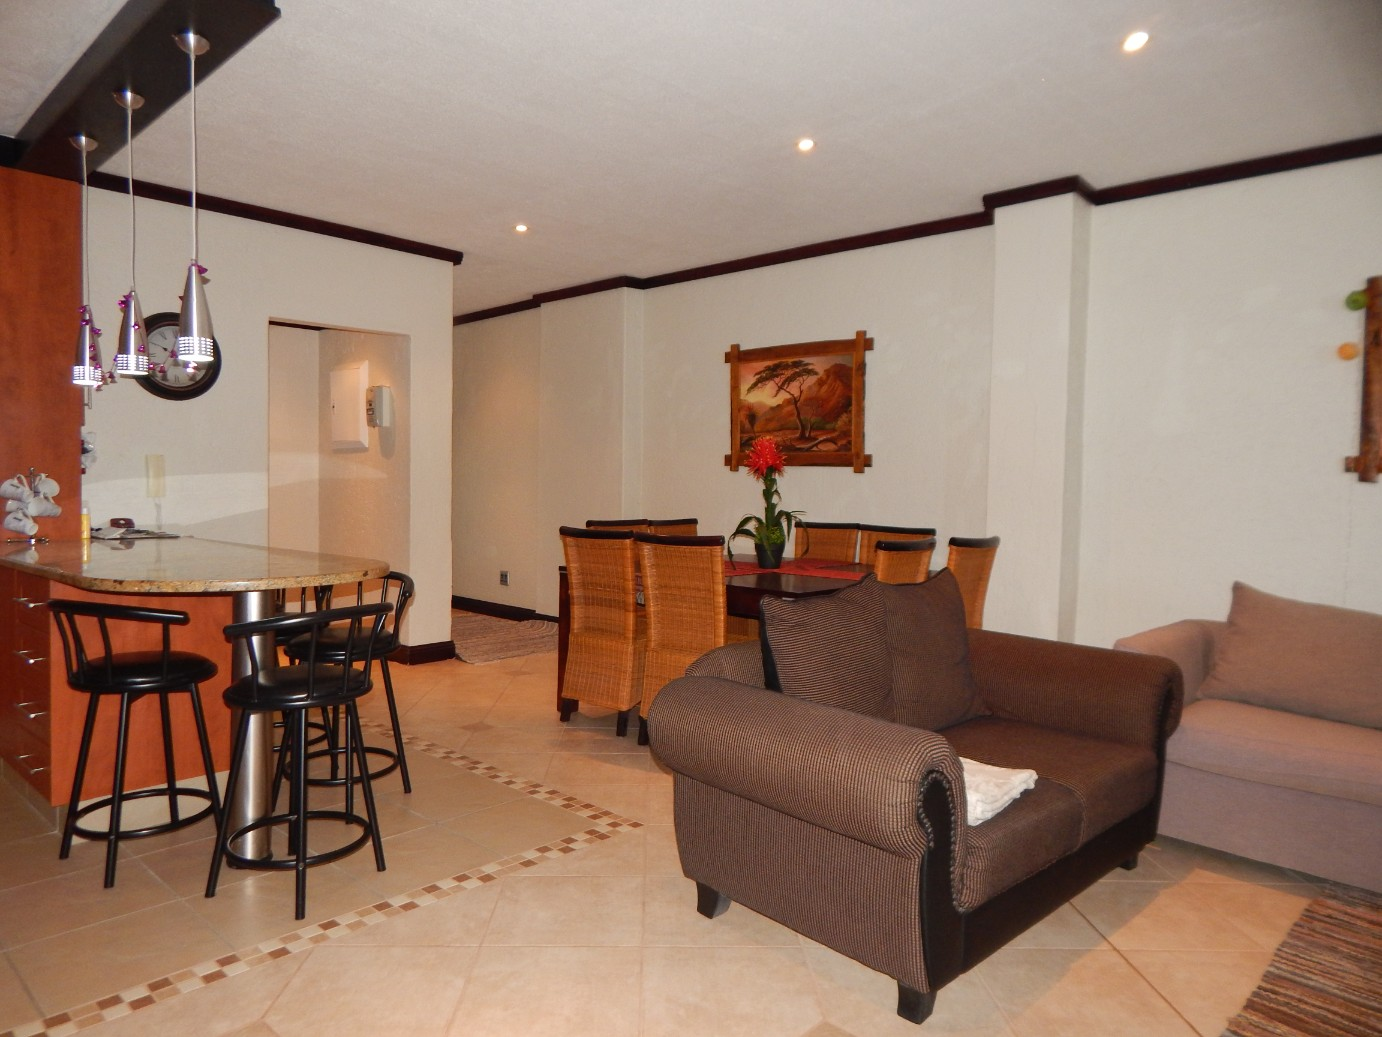 3 Bedroom Apartment for sale in Diaz Beach ENT0043723 : photo#5